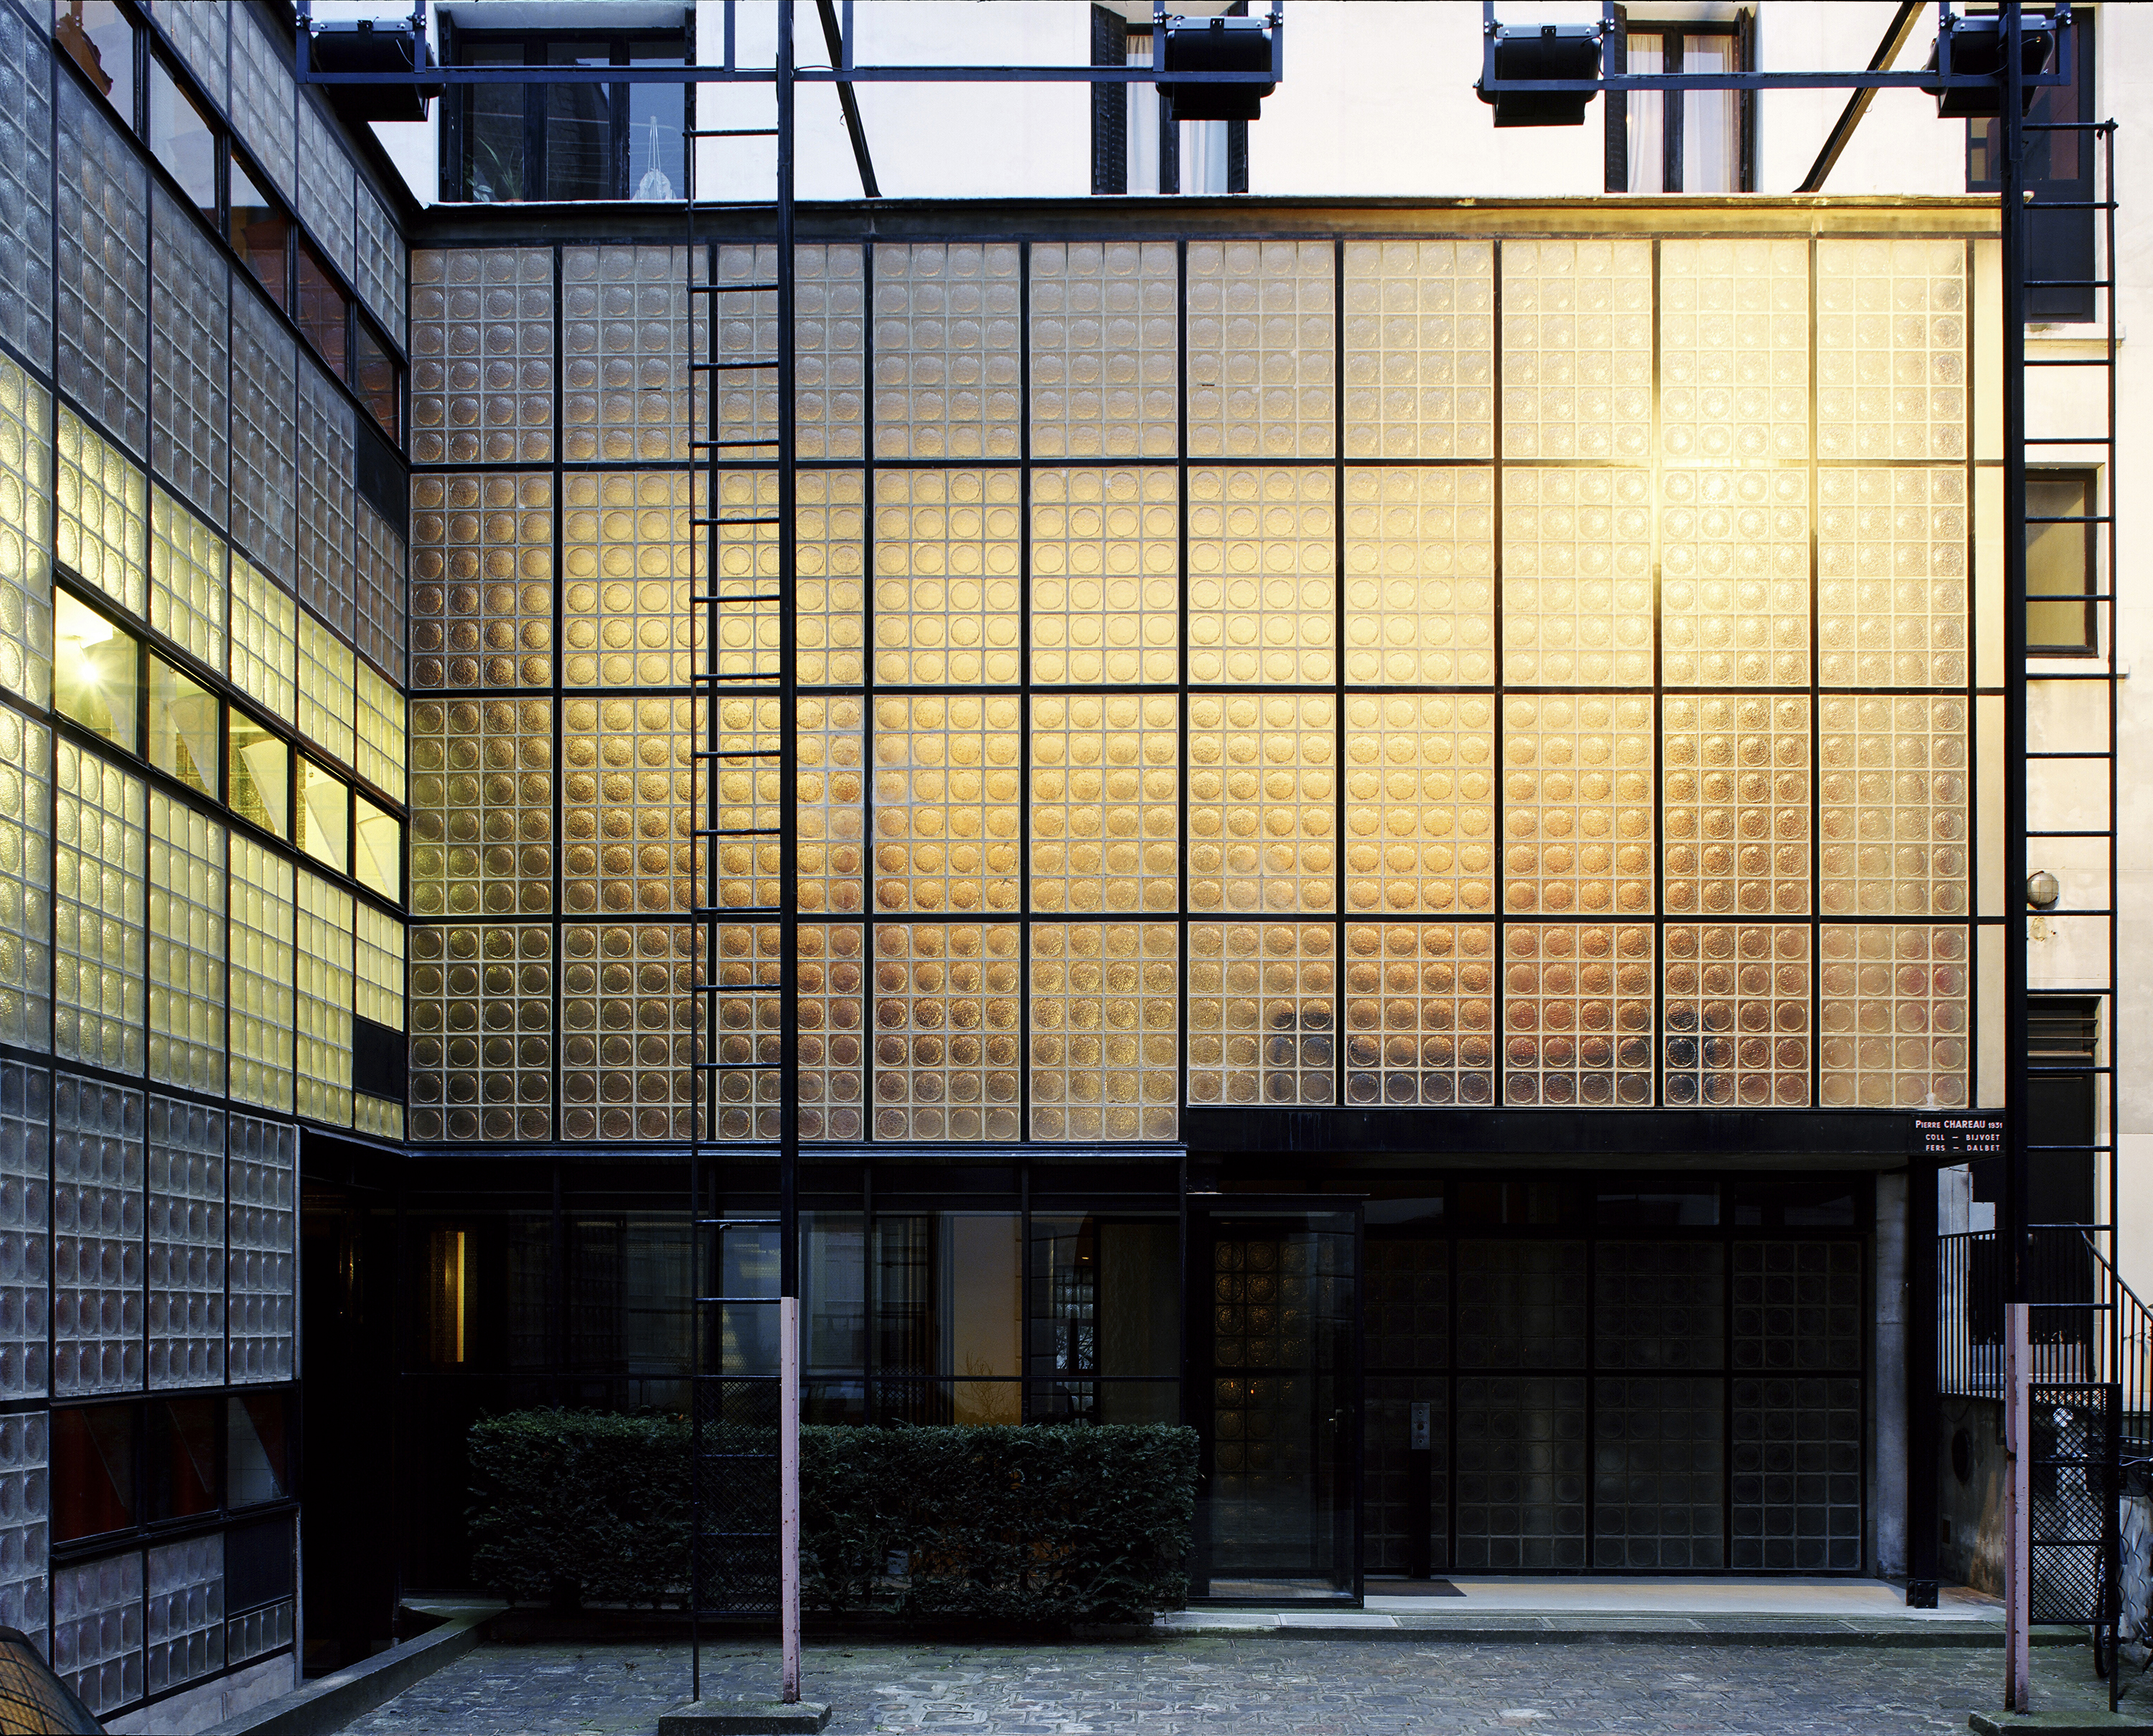 Maison de verre the other glass house curbed for A la maison de verre